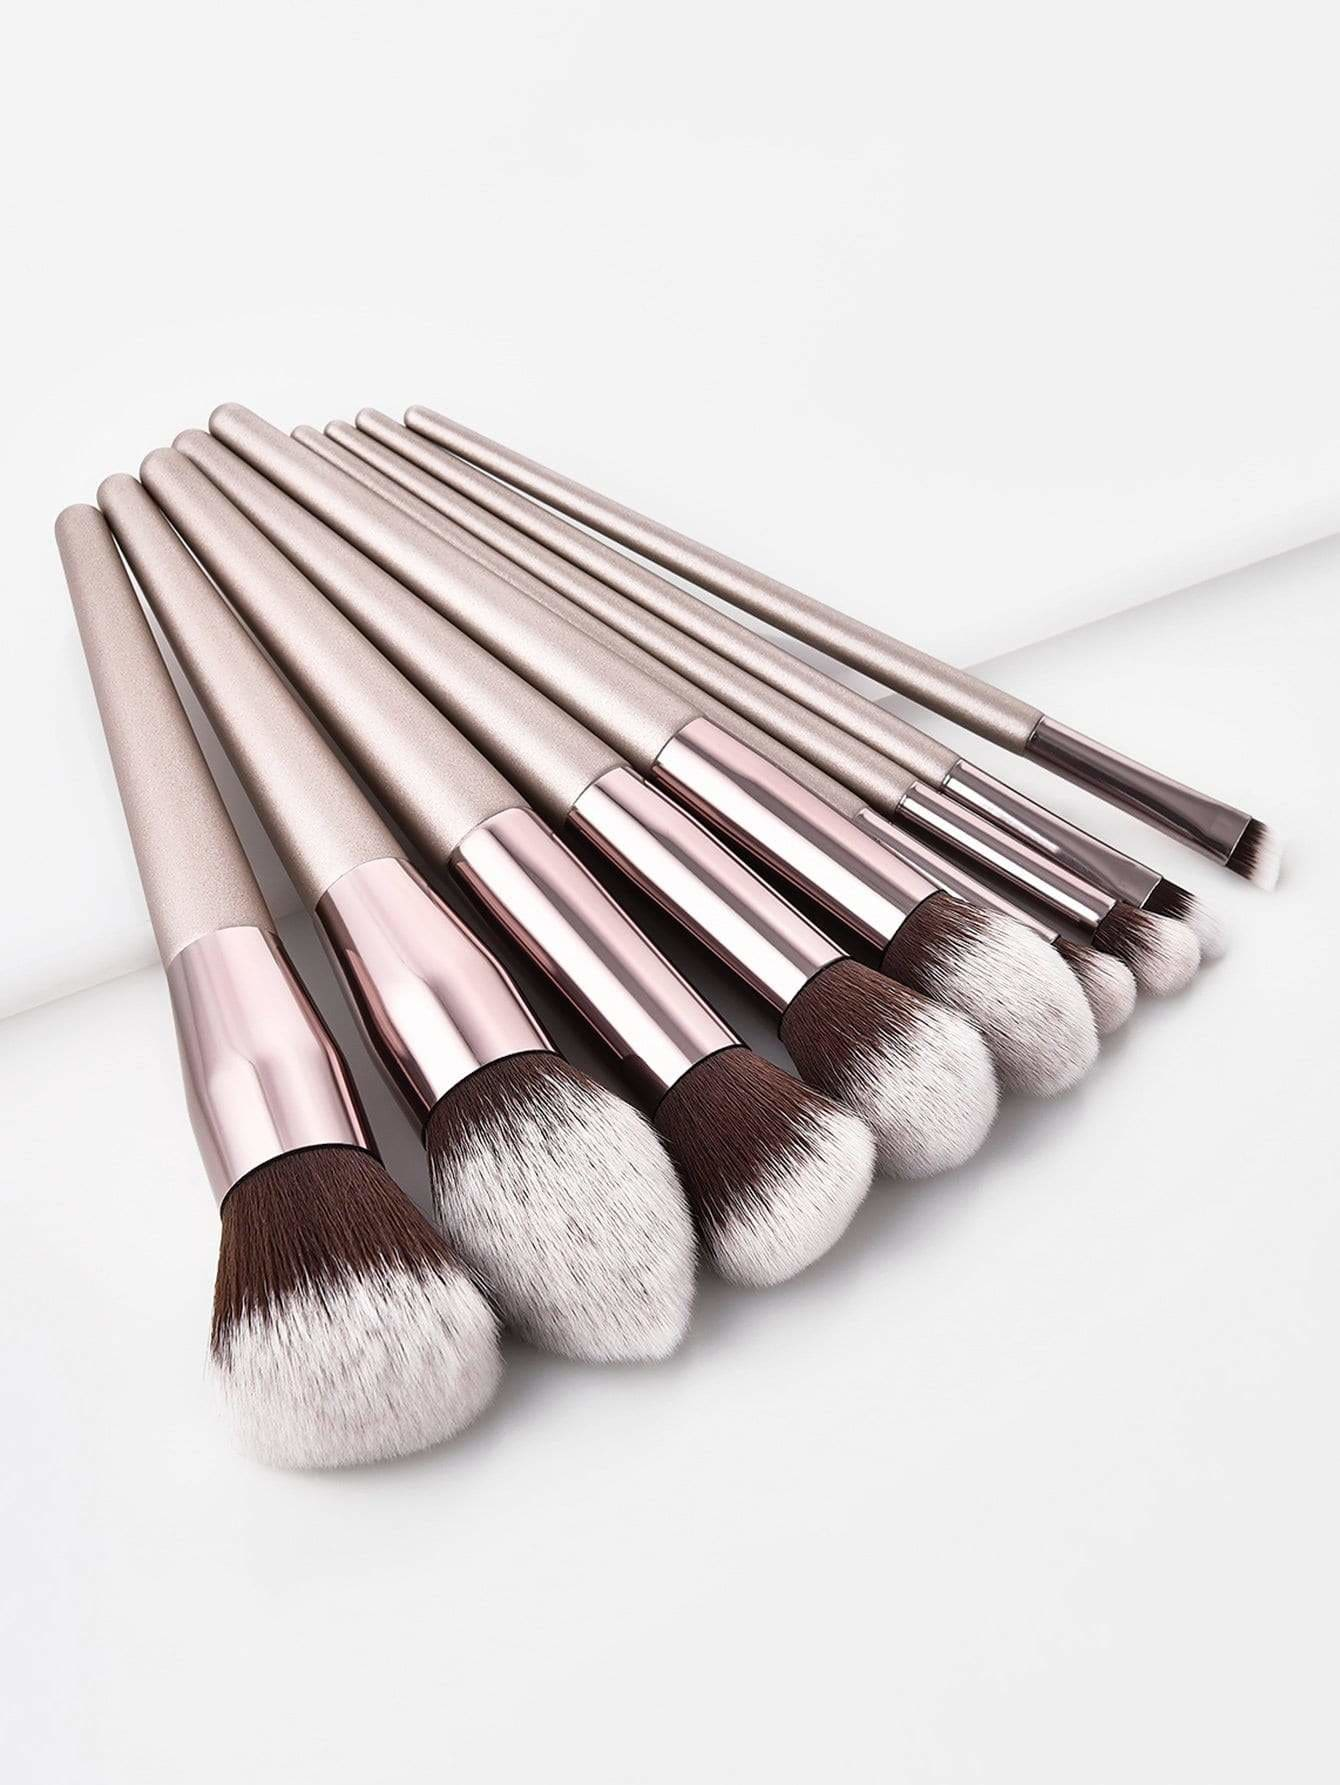 Soft Makeup Brush 9Pcs - Makeup Brushes